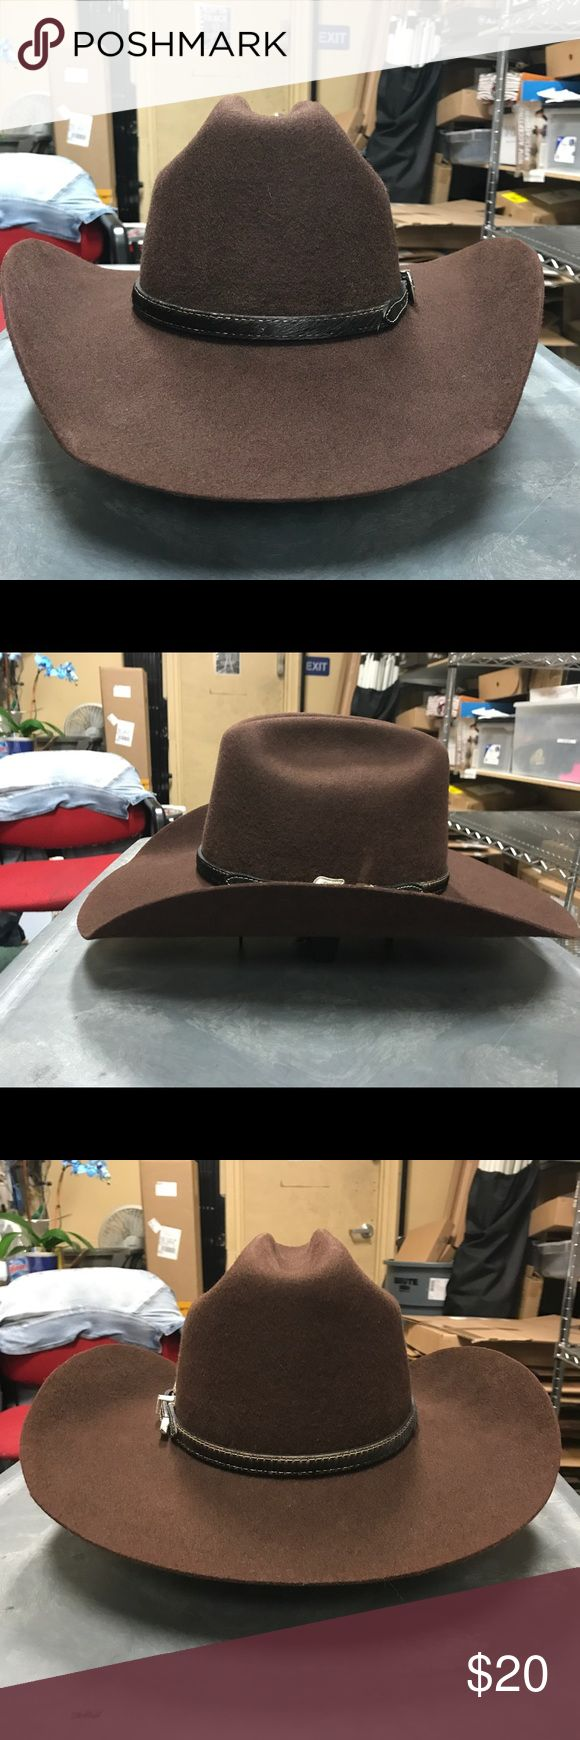 Resistol Cowboy Hat Size: 7, Brim: 4 1/4, Color: Brown, 3X Felt. Hat Band NOT included. Used but excellent shape, no stains, has been cleaned and re blocked. Resistol Accessories Hats